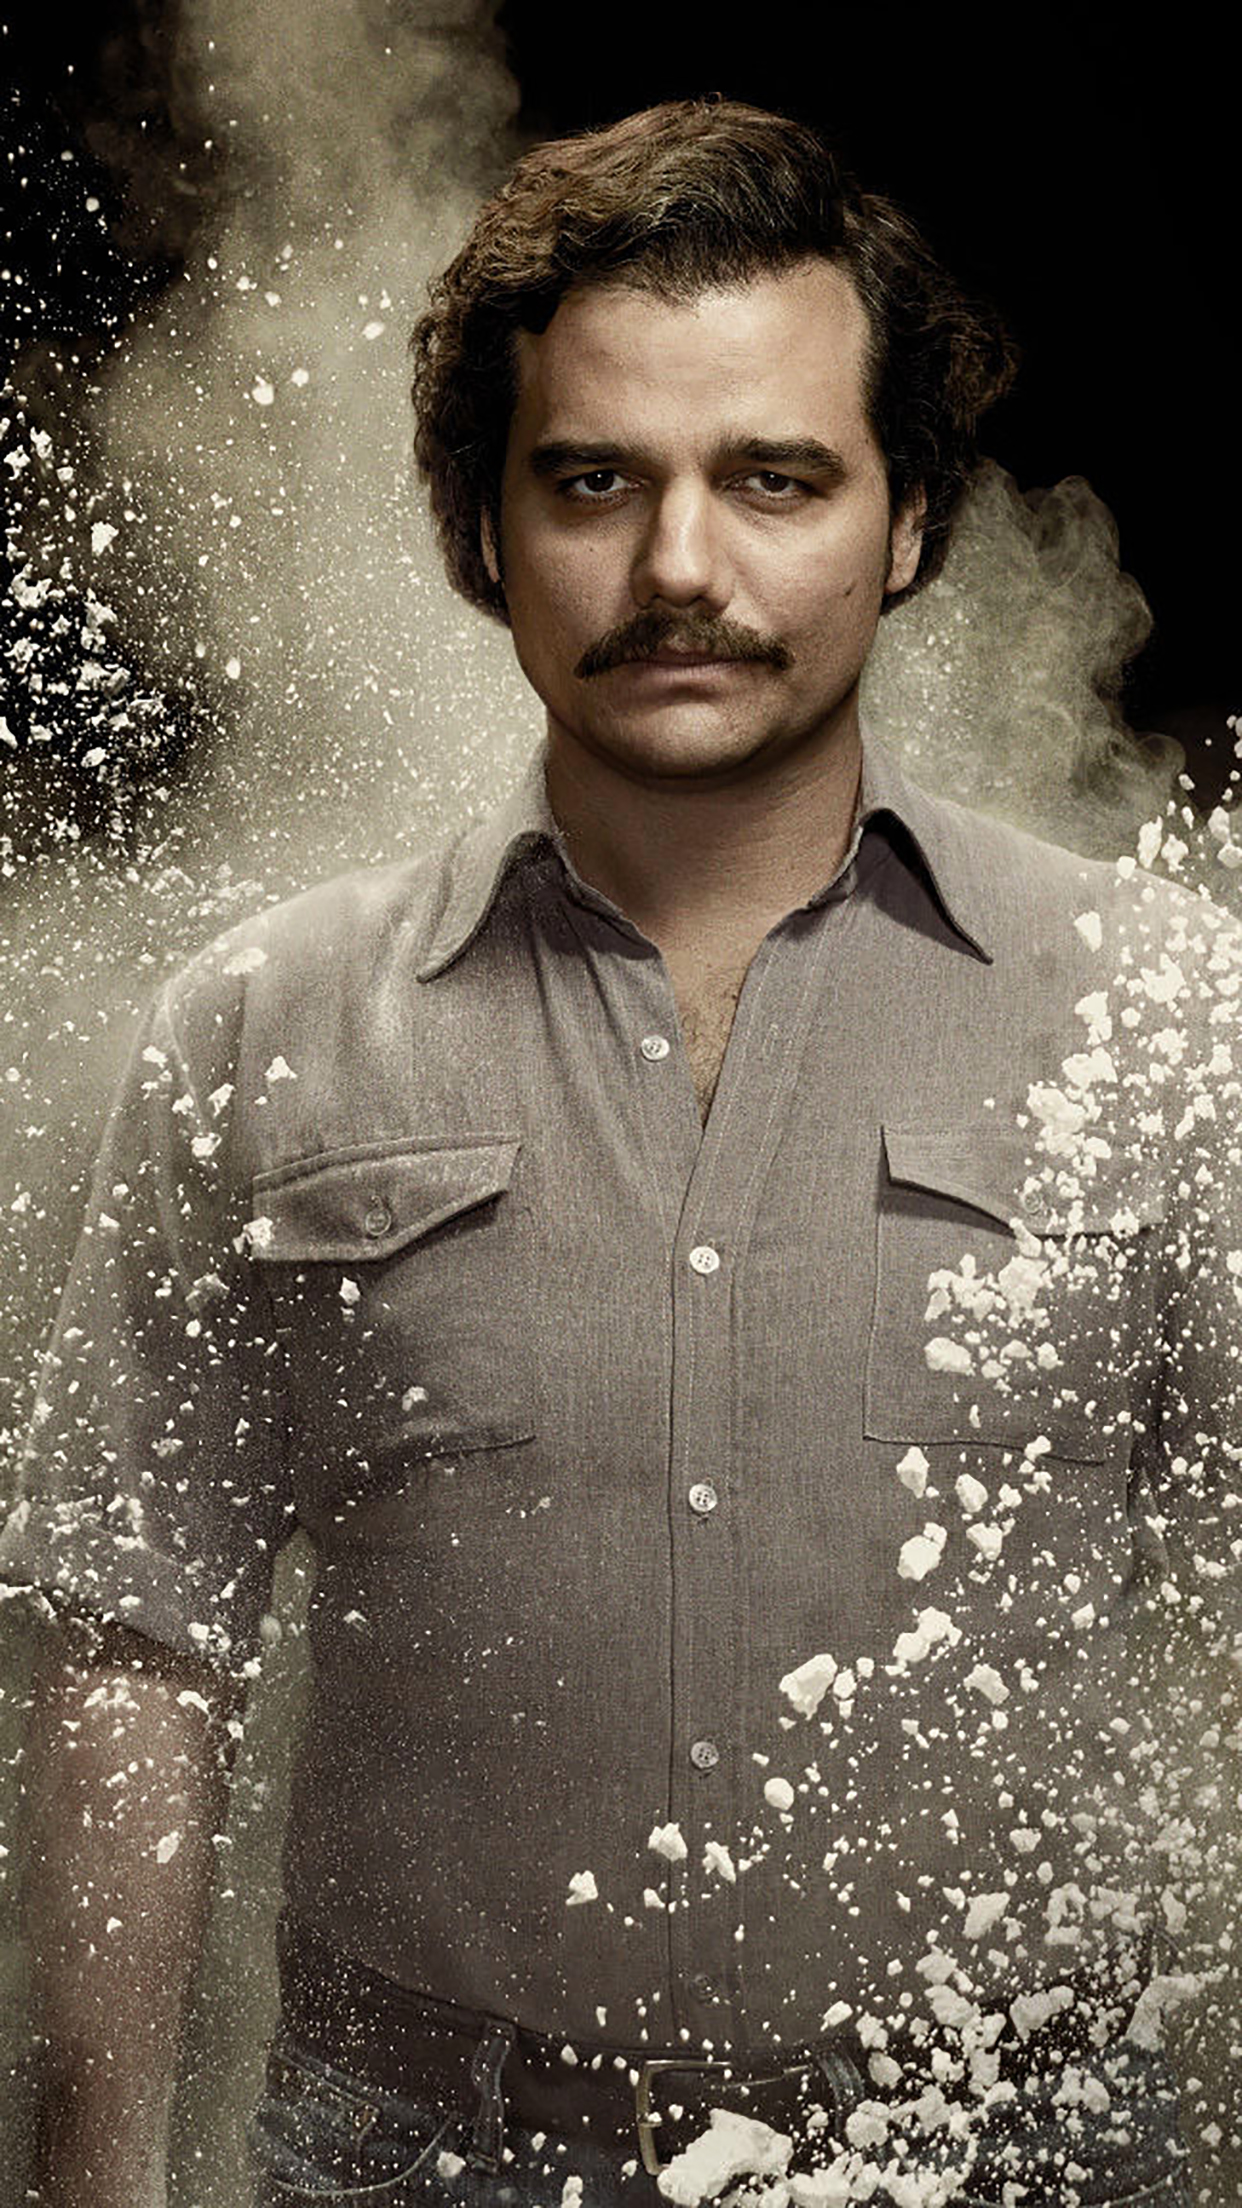 Narcos Pablo Escobar 3Wallpapers iPhone Parallax.jpg Narcos : Pablo Escobar